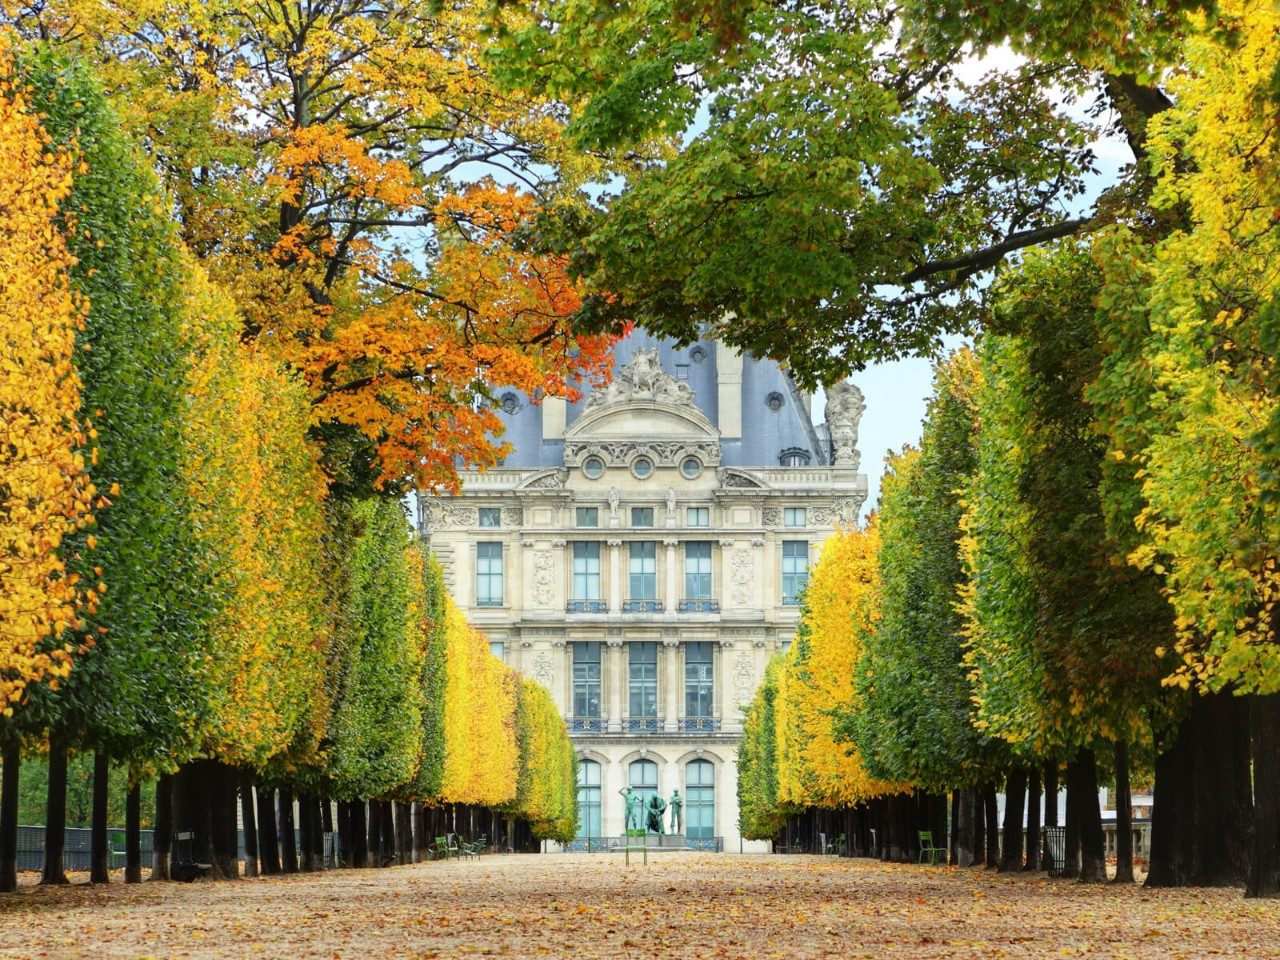 Jardin-de-Tuileries-paris-things-to-do-ThinkstockPhotos.jpg